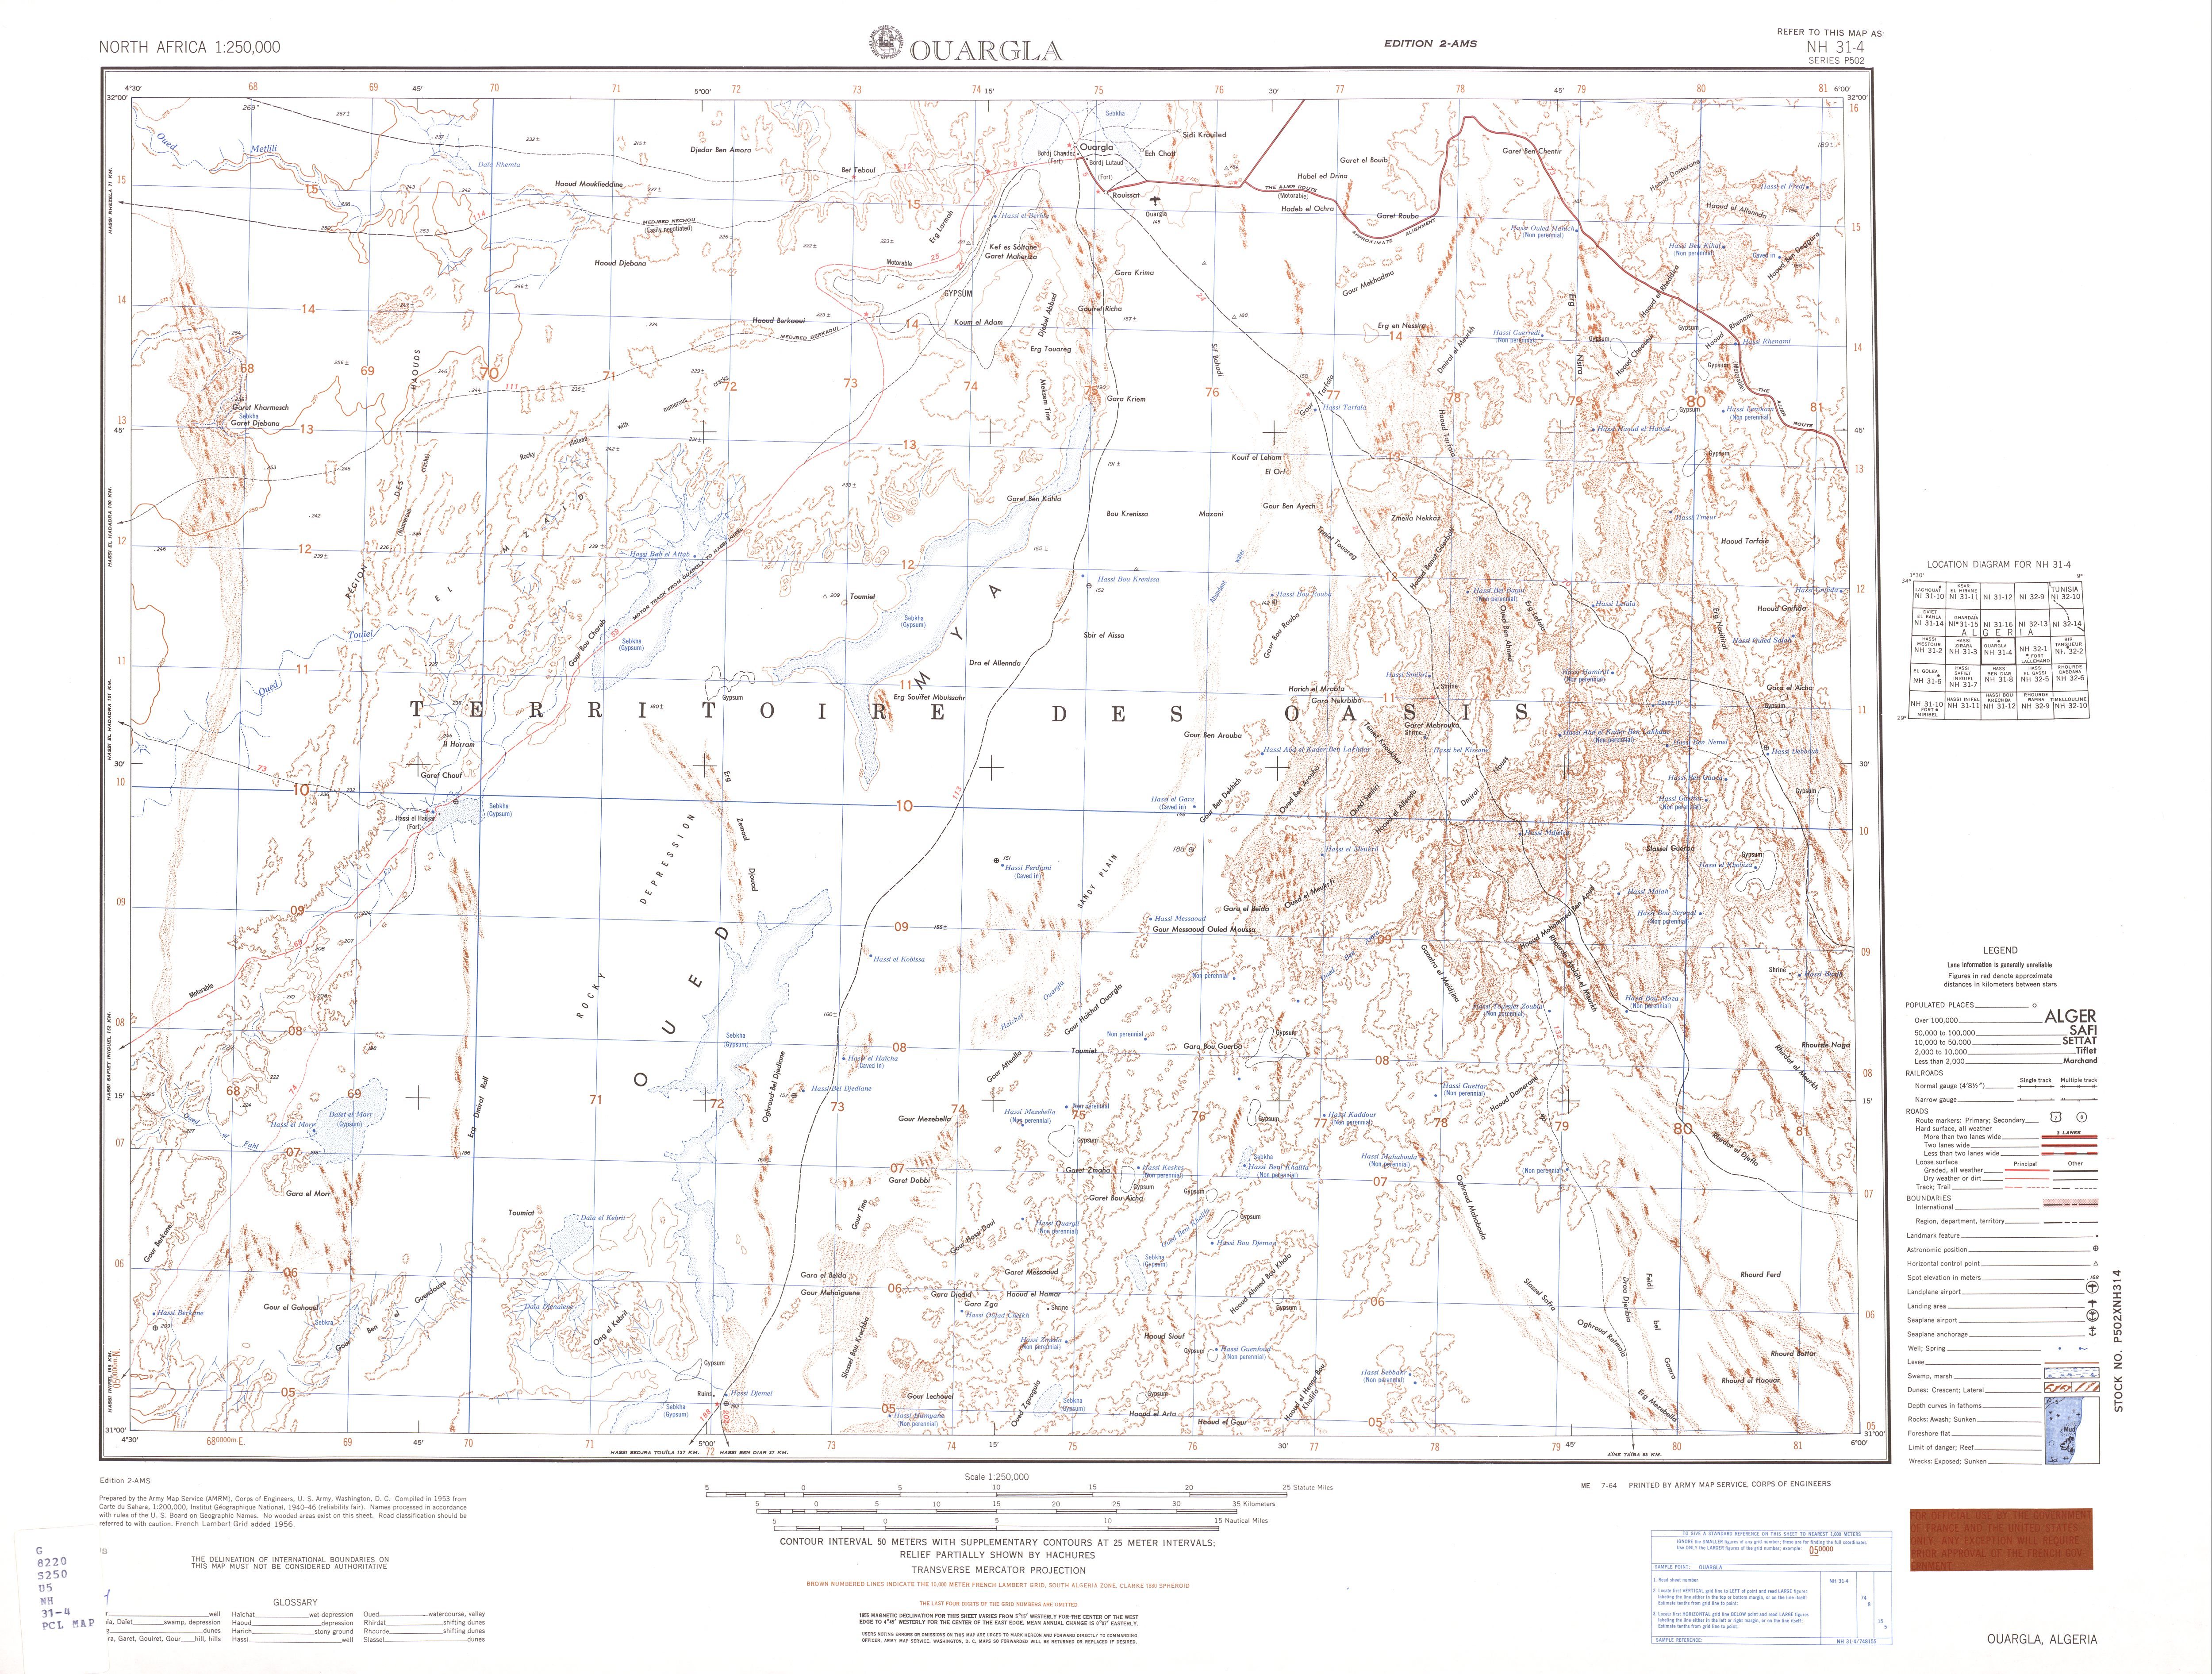 North Africa AMS Topographic Maps PerryCastañeda Map Collection - Ouargla map